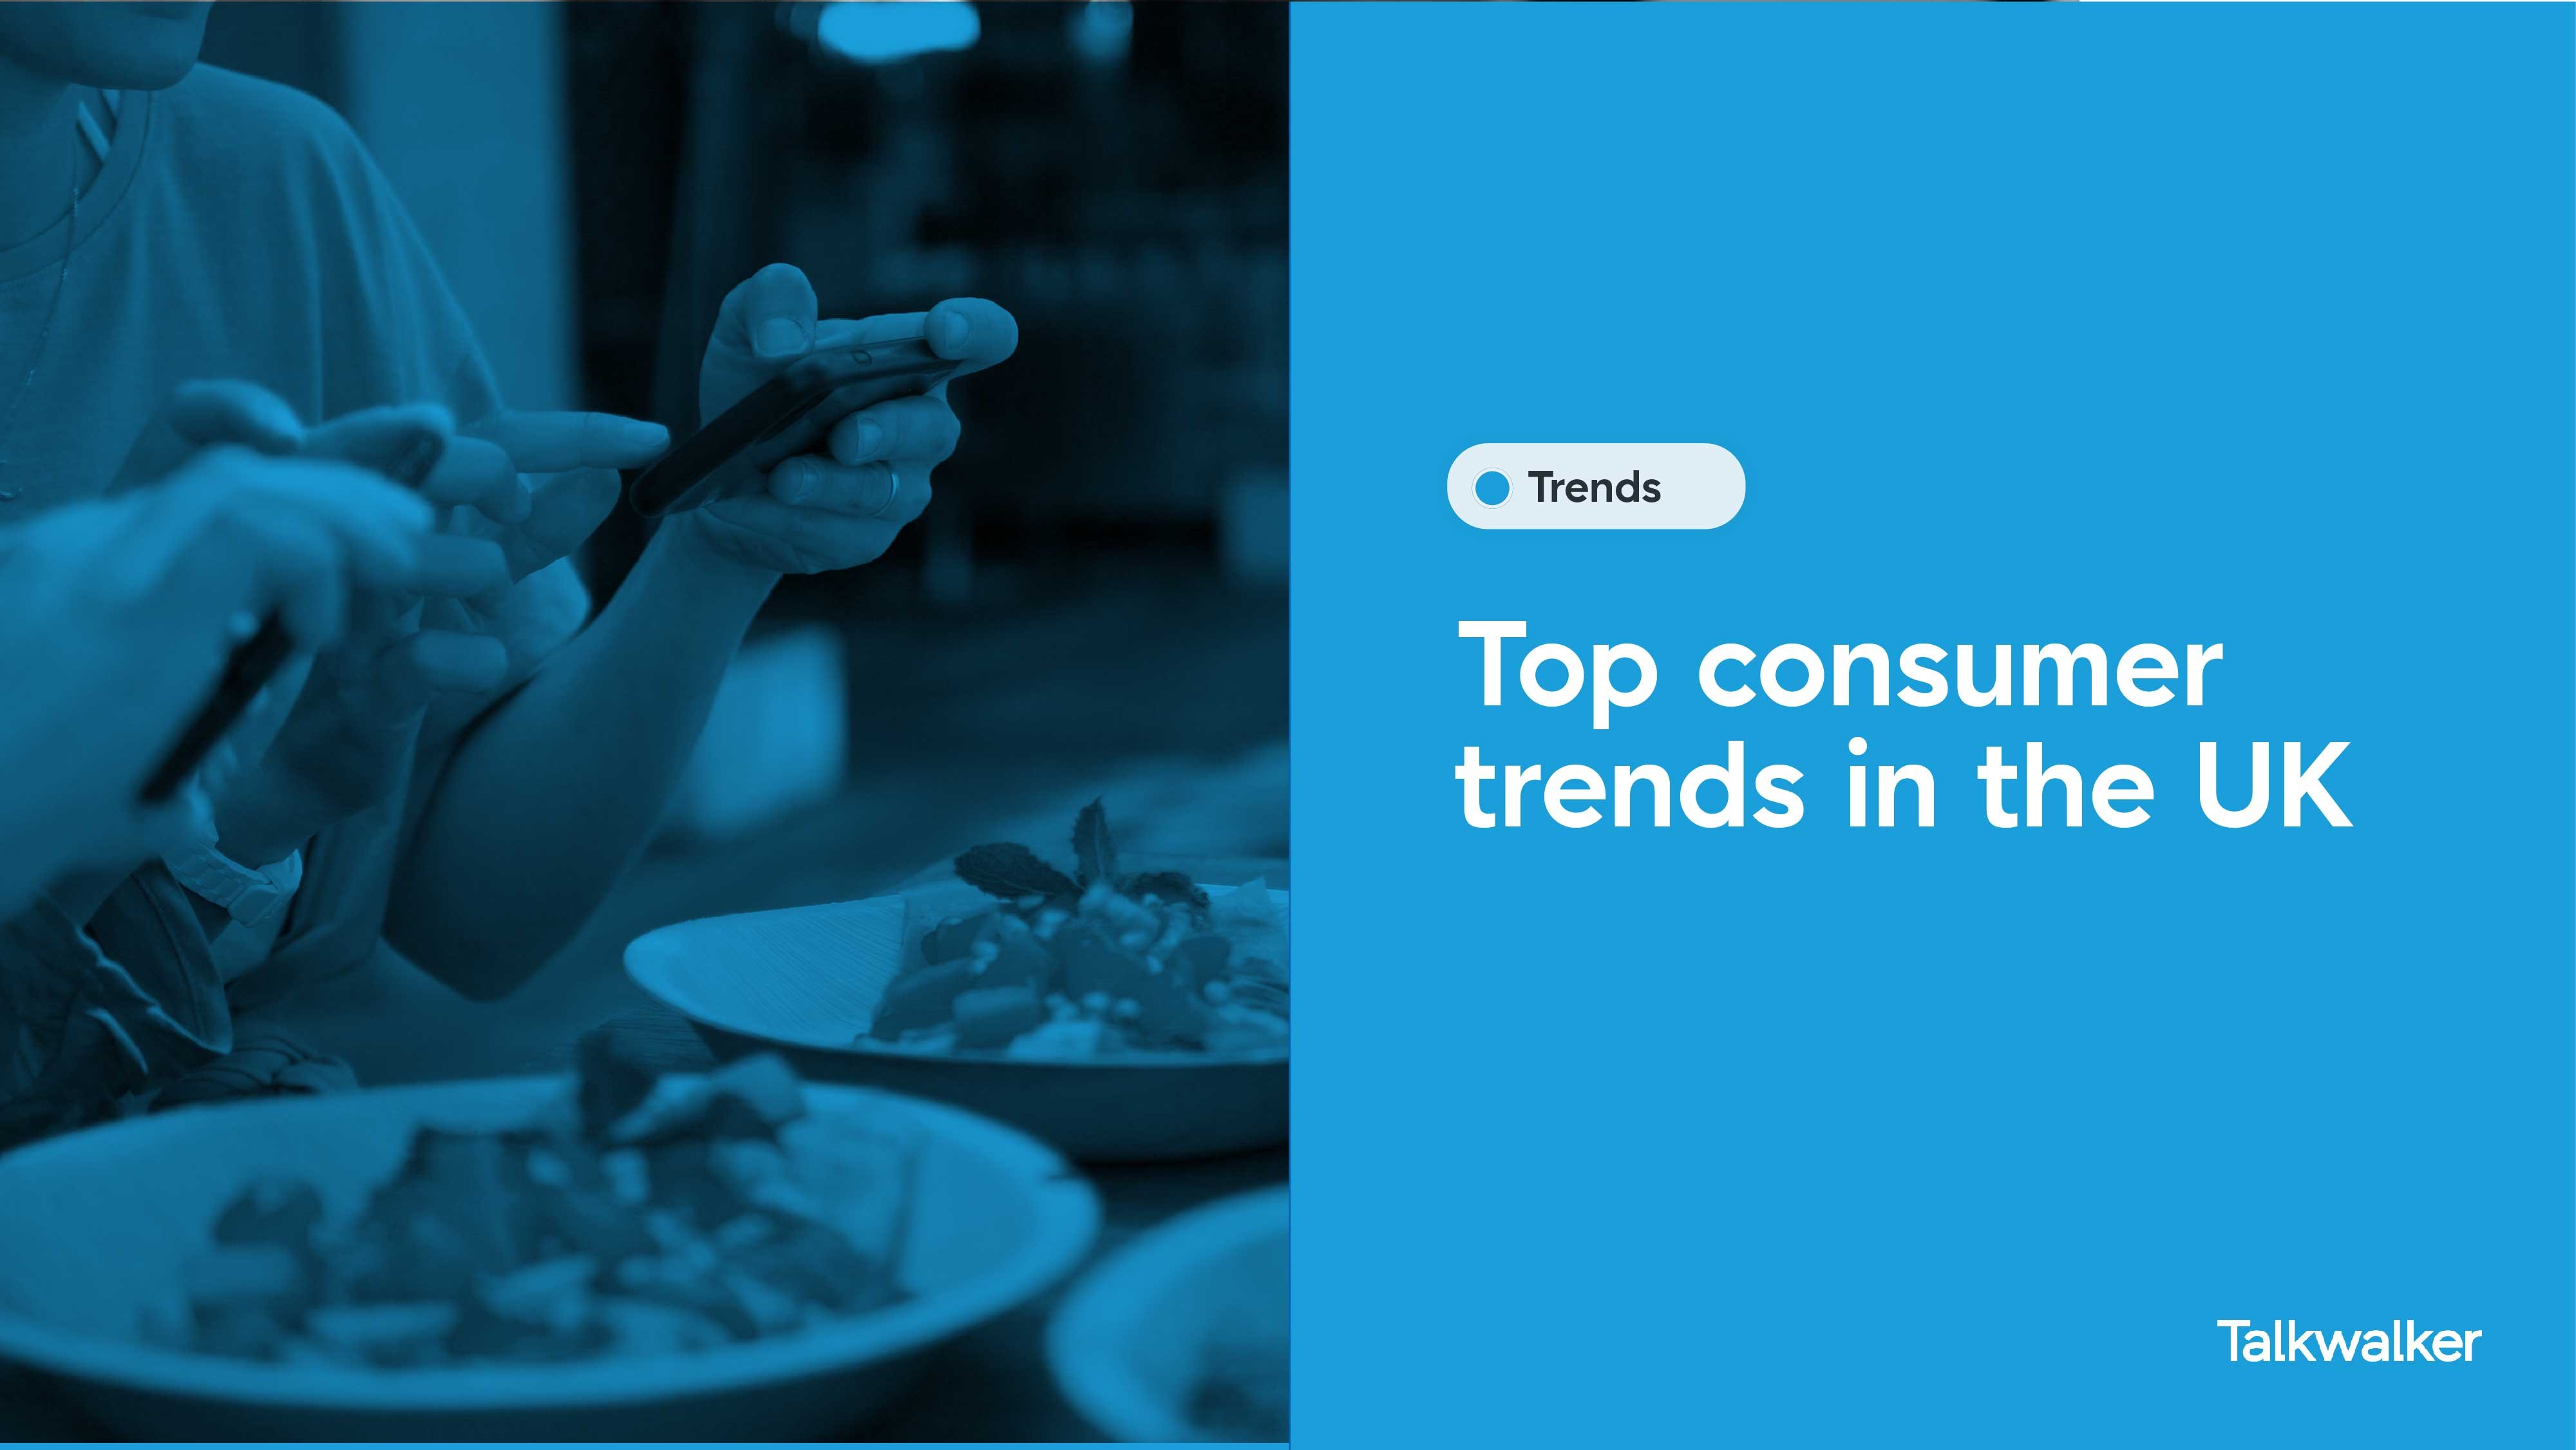 Top Consumer Trends in the UK